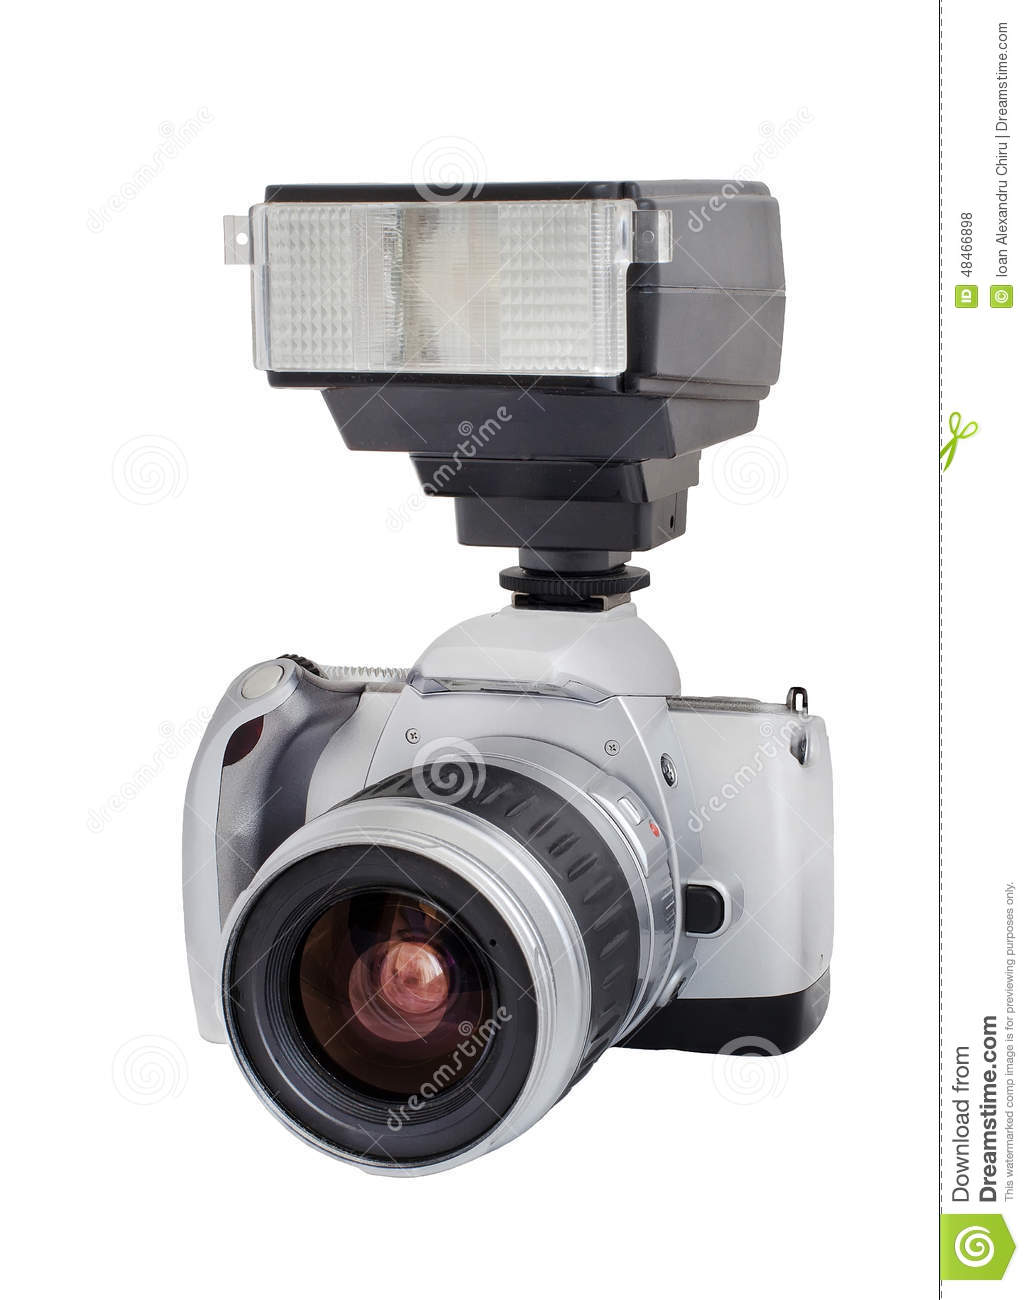 Silver analog camera with lens and flash isolated on a white background